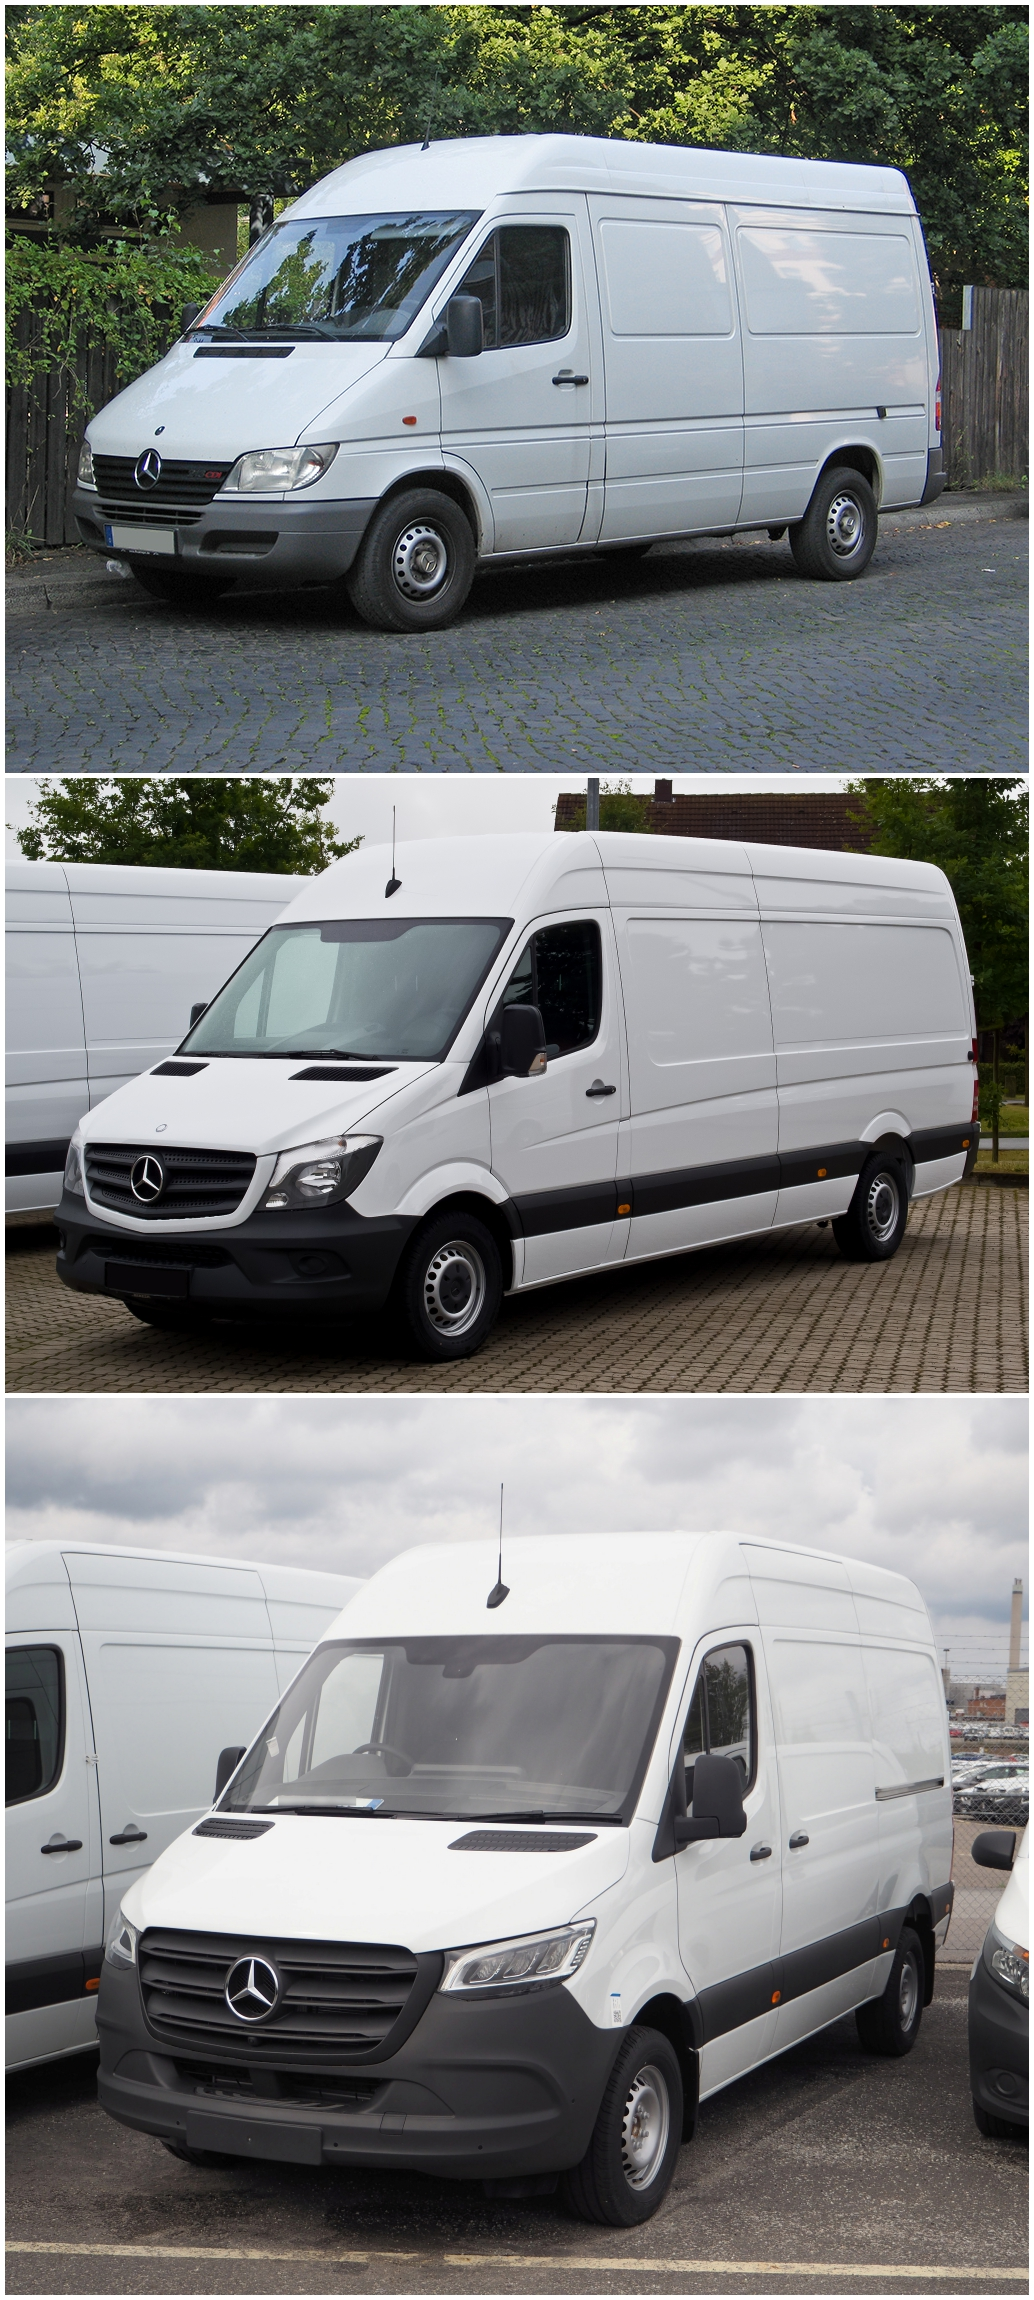 Mercedes-Benz Sprinter - Wikipedia